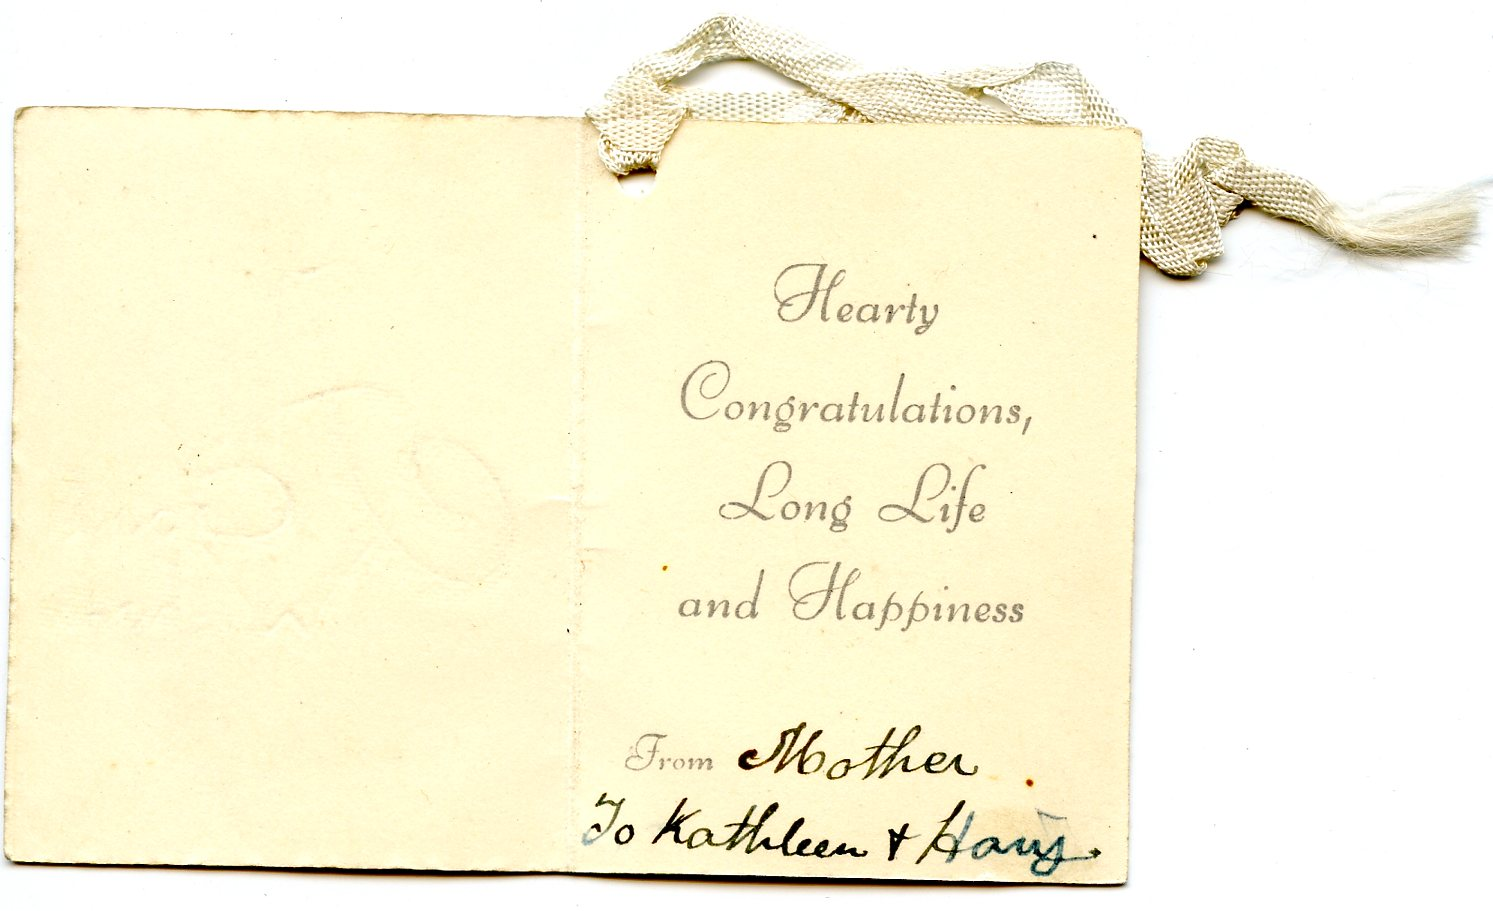 Crout k and h message in wedding card seeking susan meeting crout k and h message in wedding card m4hsunfo